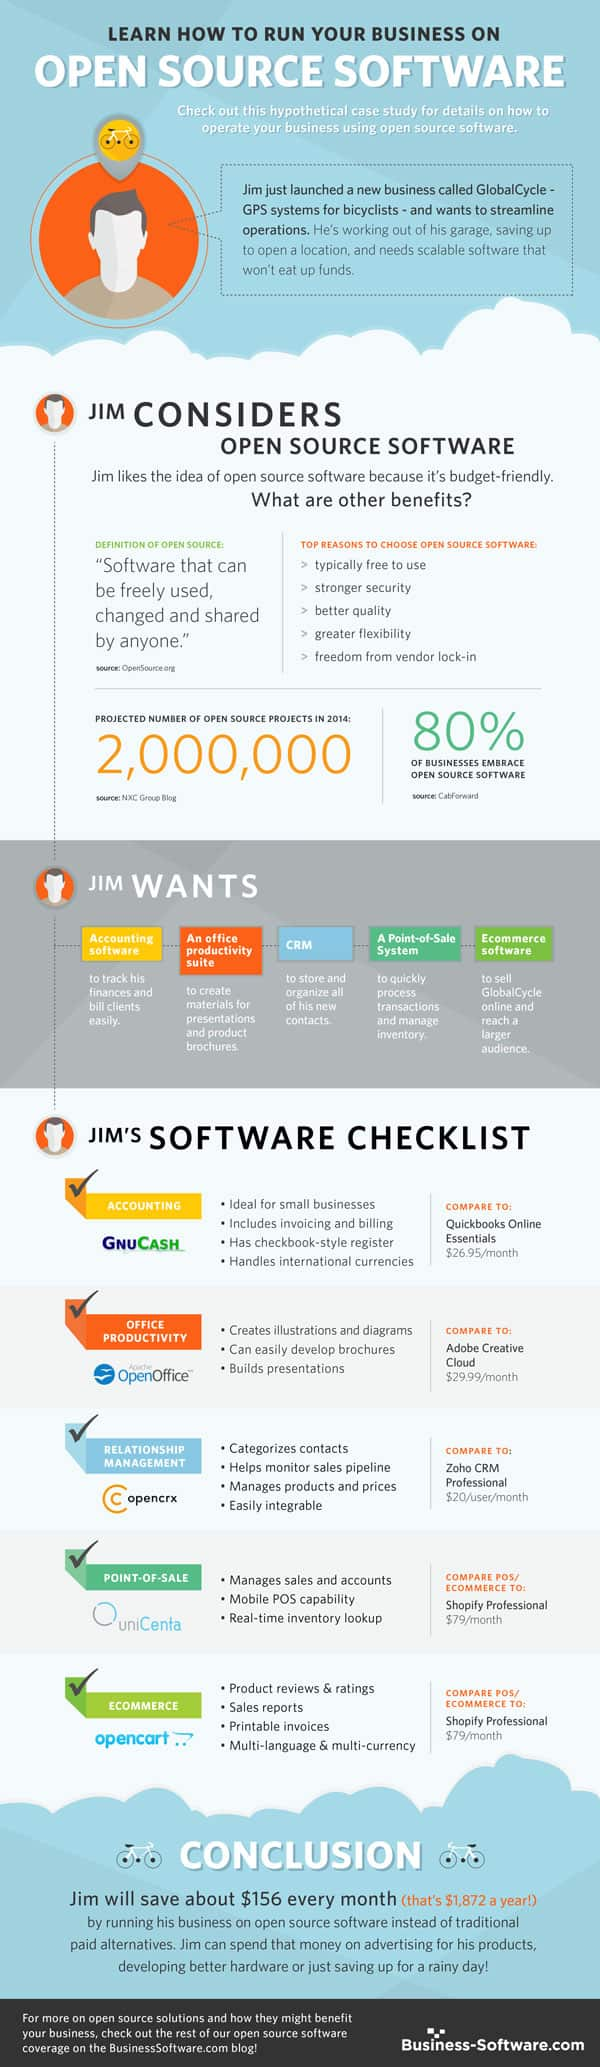 Run Your Business On Open Source Software [Infographic]